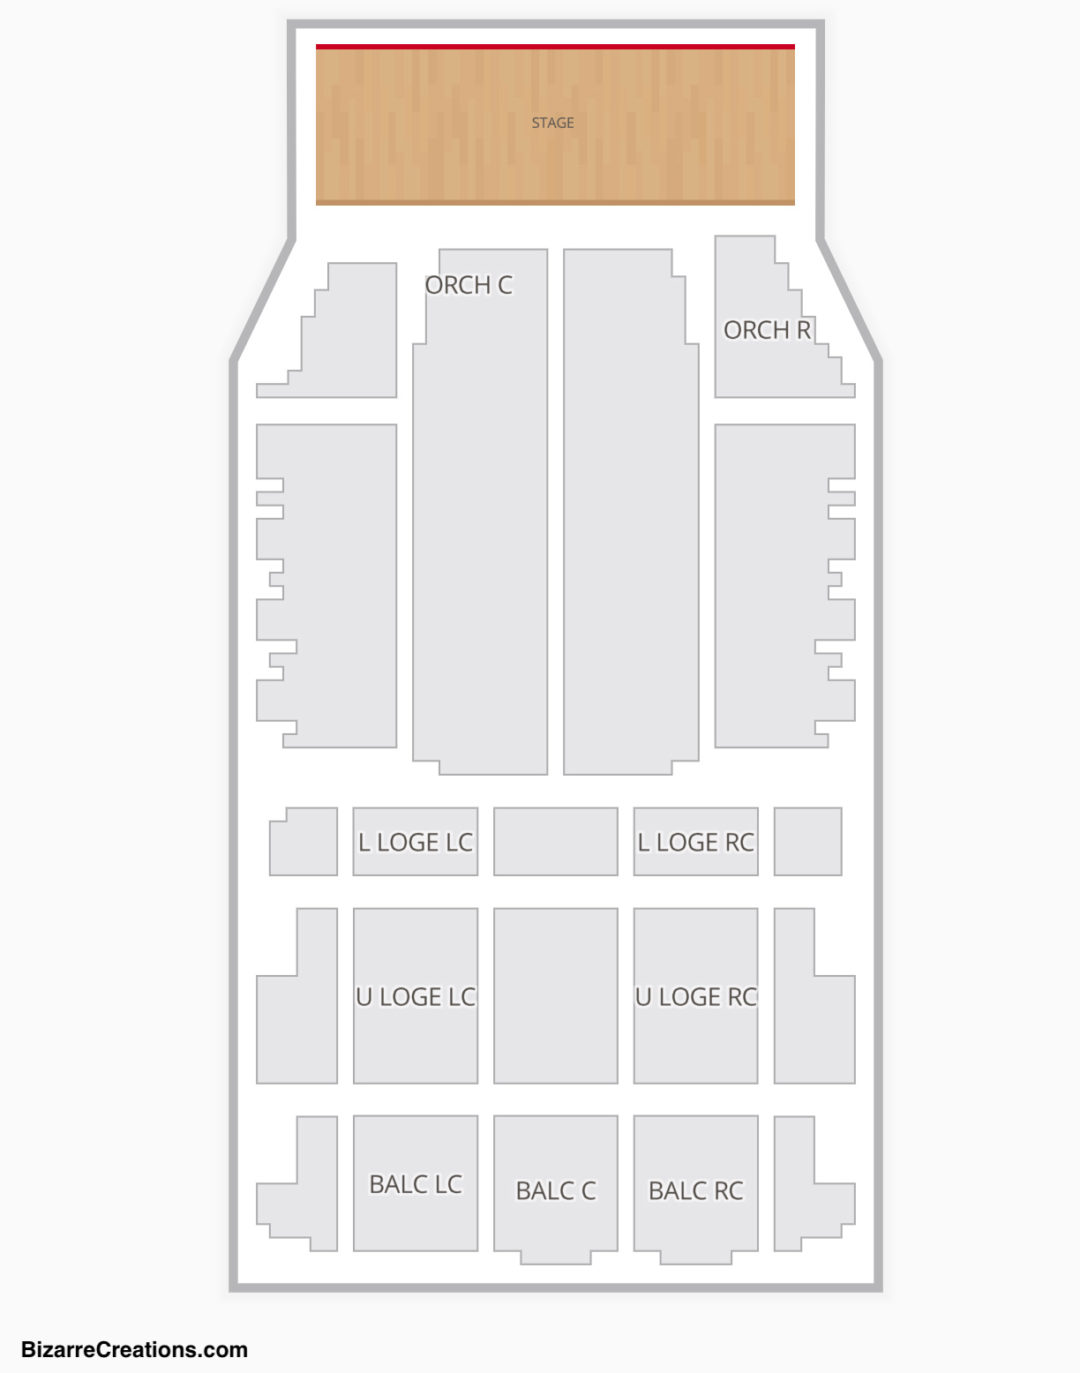 United Palace Theatre Seating Chart Concert